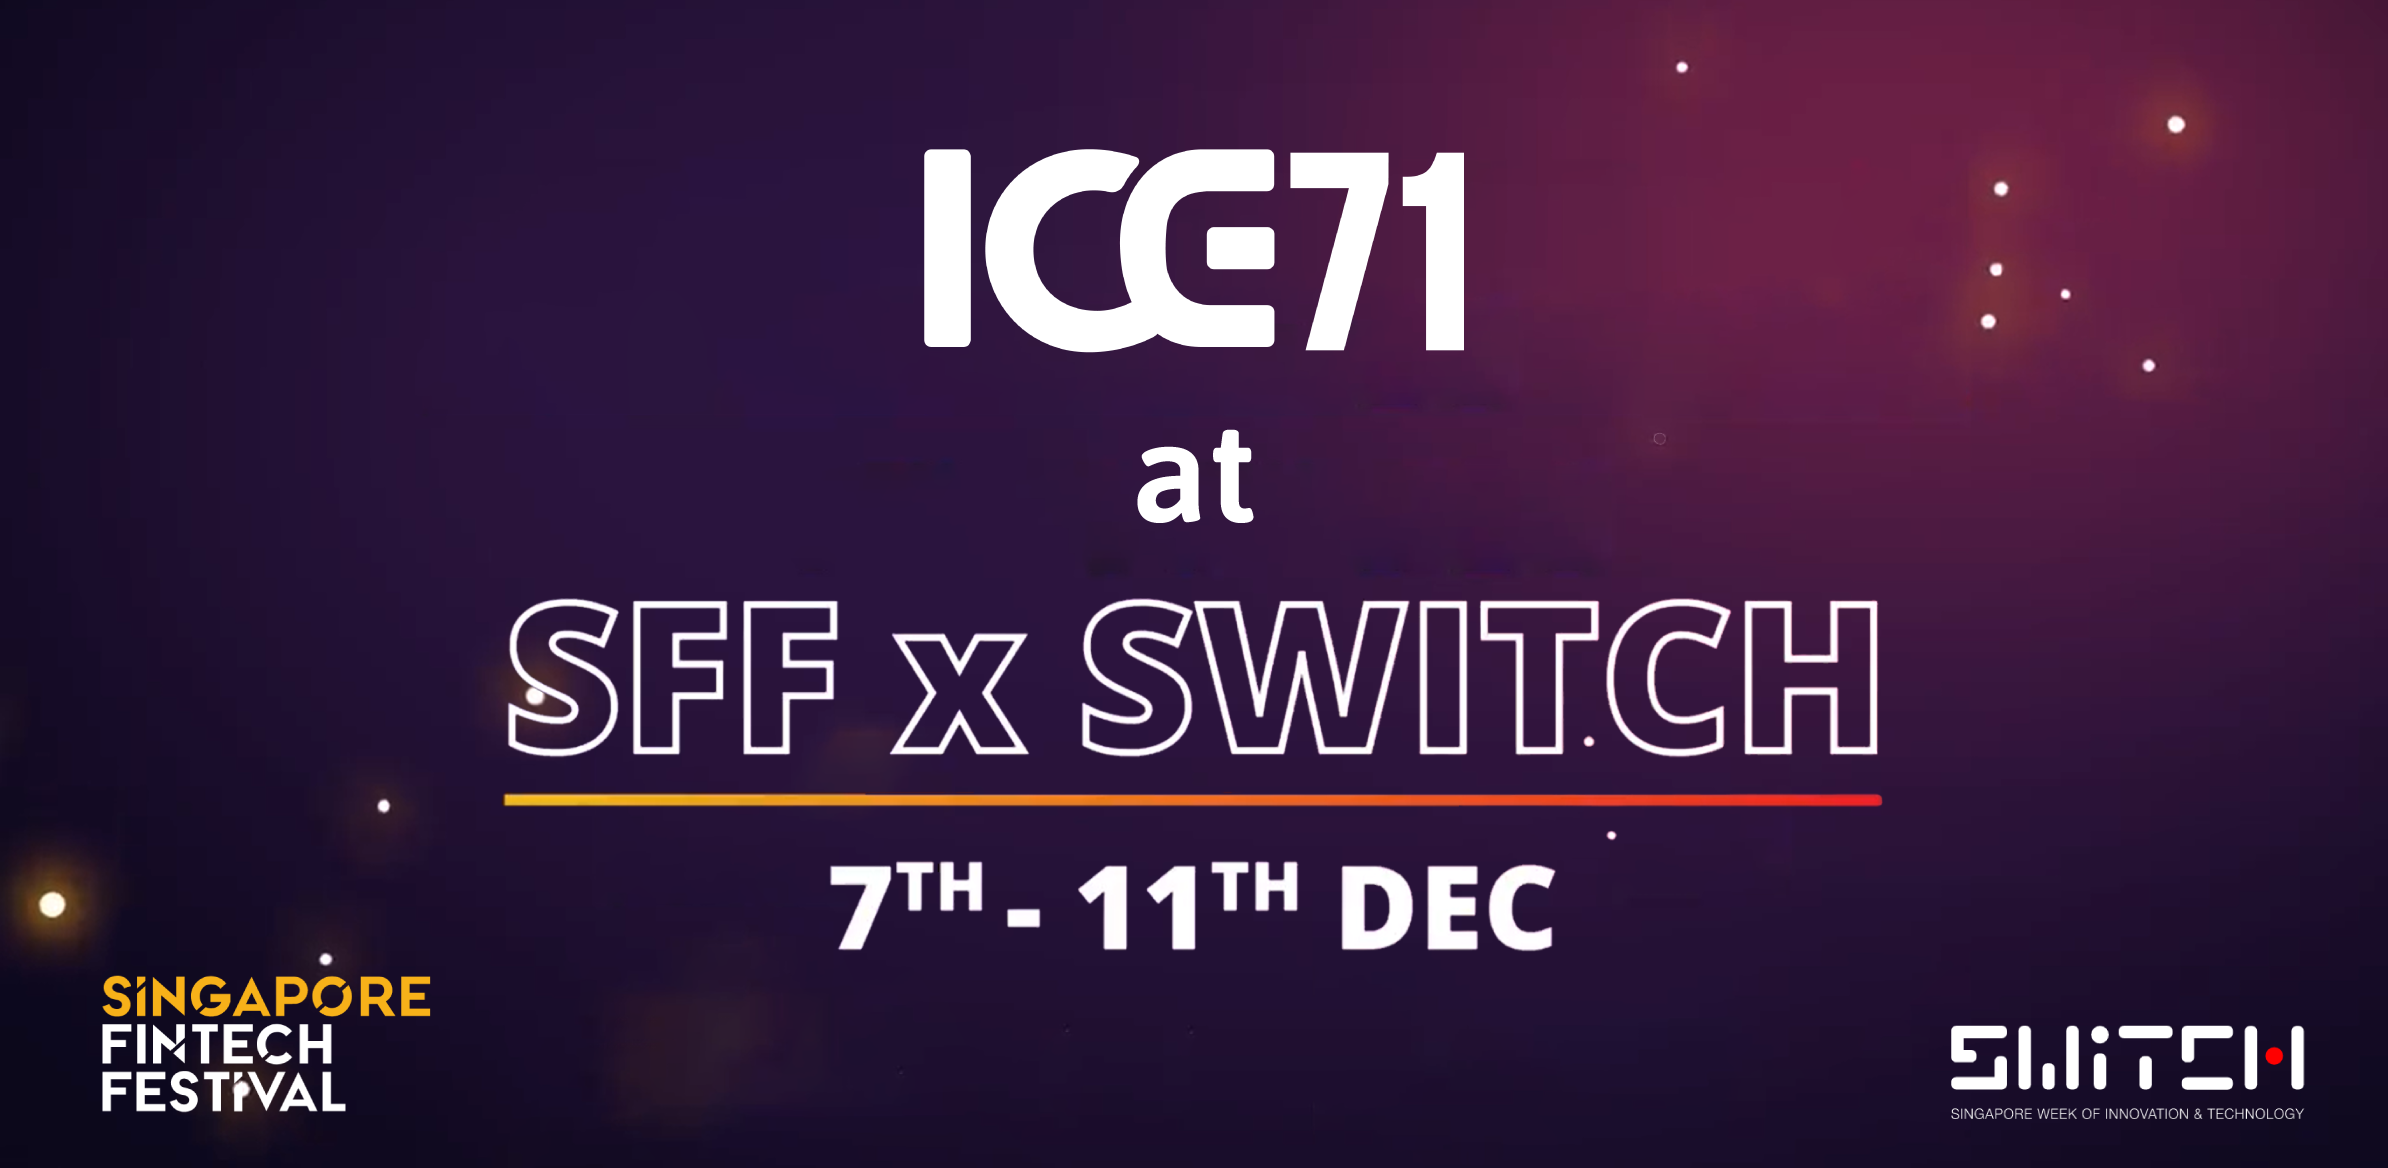 ICE71 at SFF x SWITCH 2020